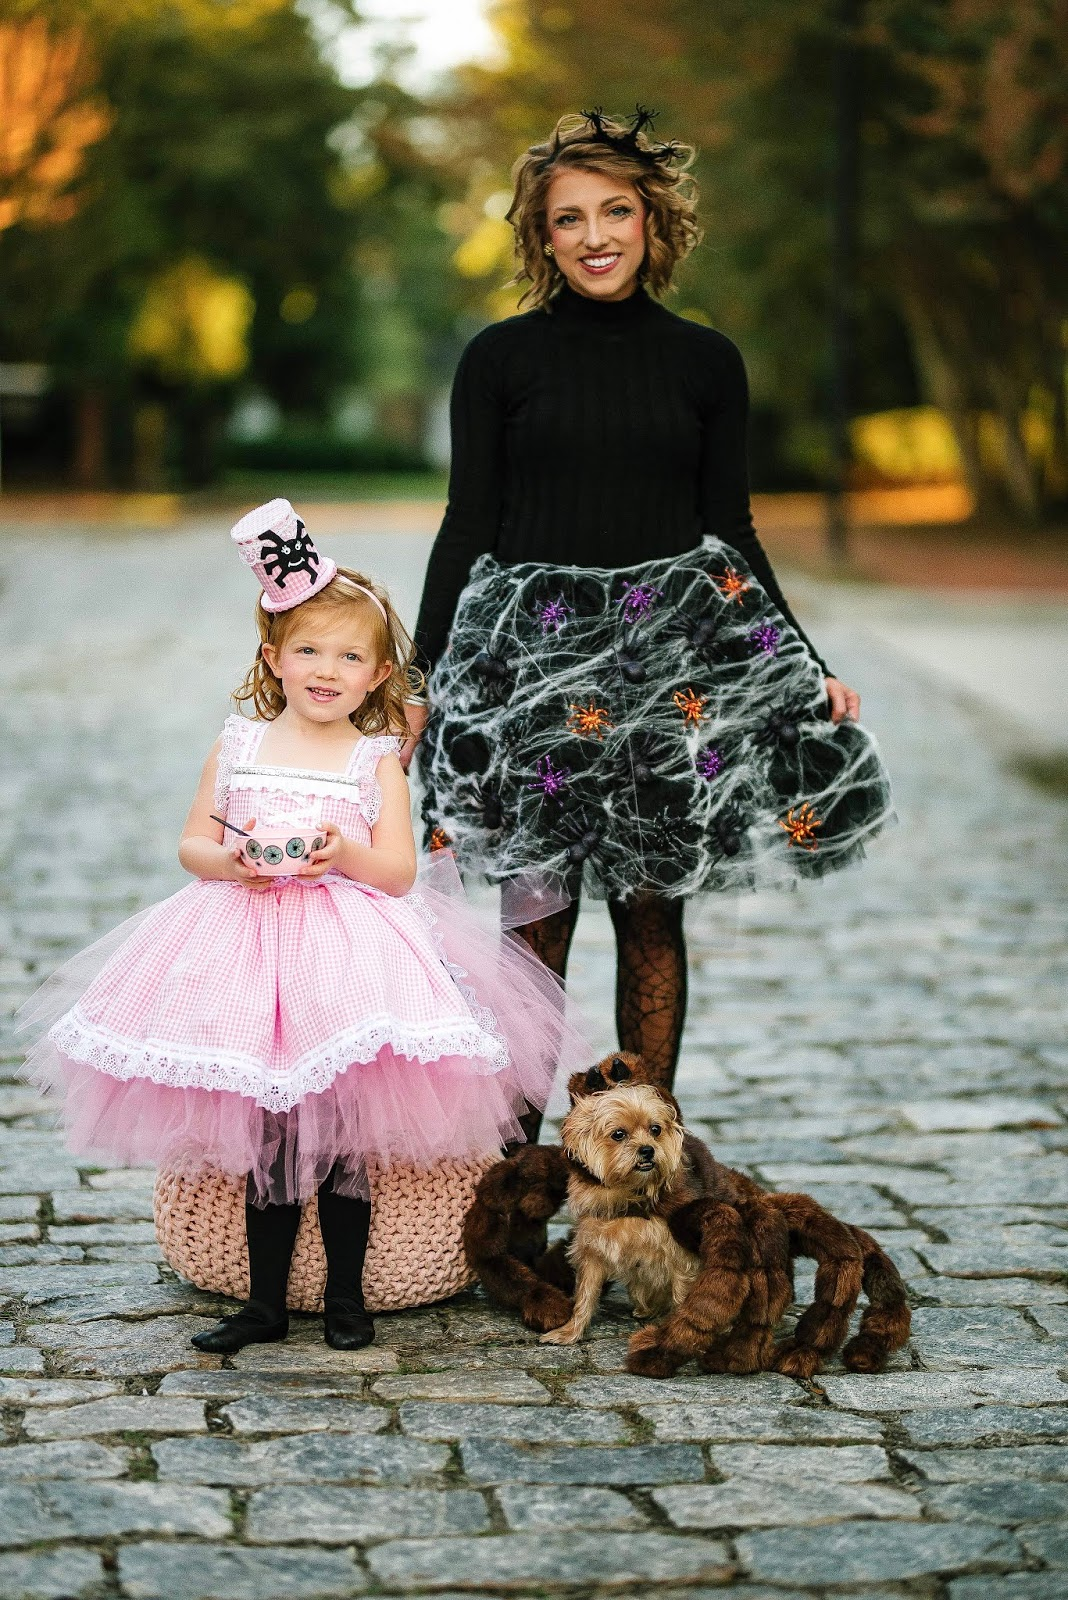 Family Halloween Costume Ideas: A Little Miss Muffet Halloween - Something Delightful Blog